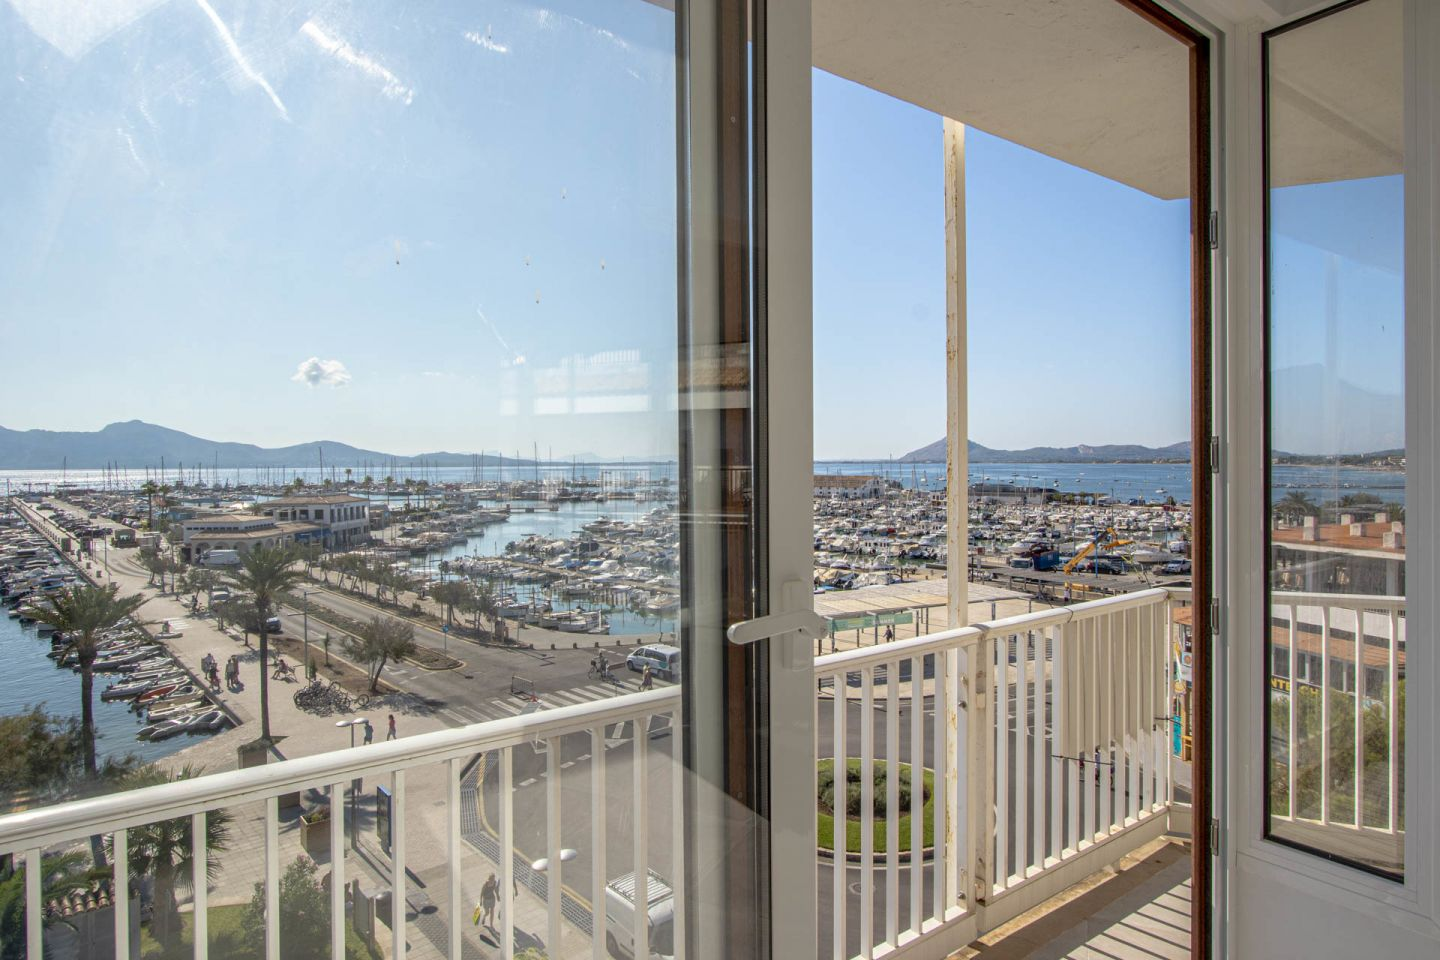 4 Bed Apartment for sale in PUERTO POLLENSA 8